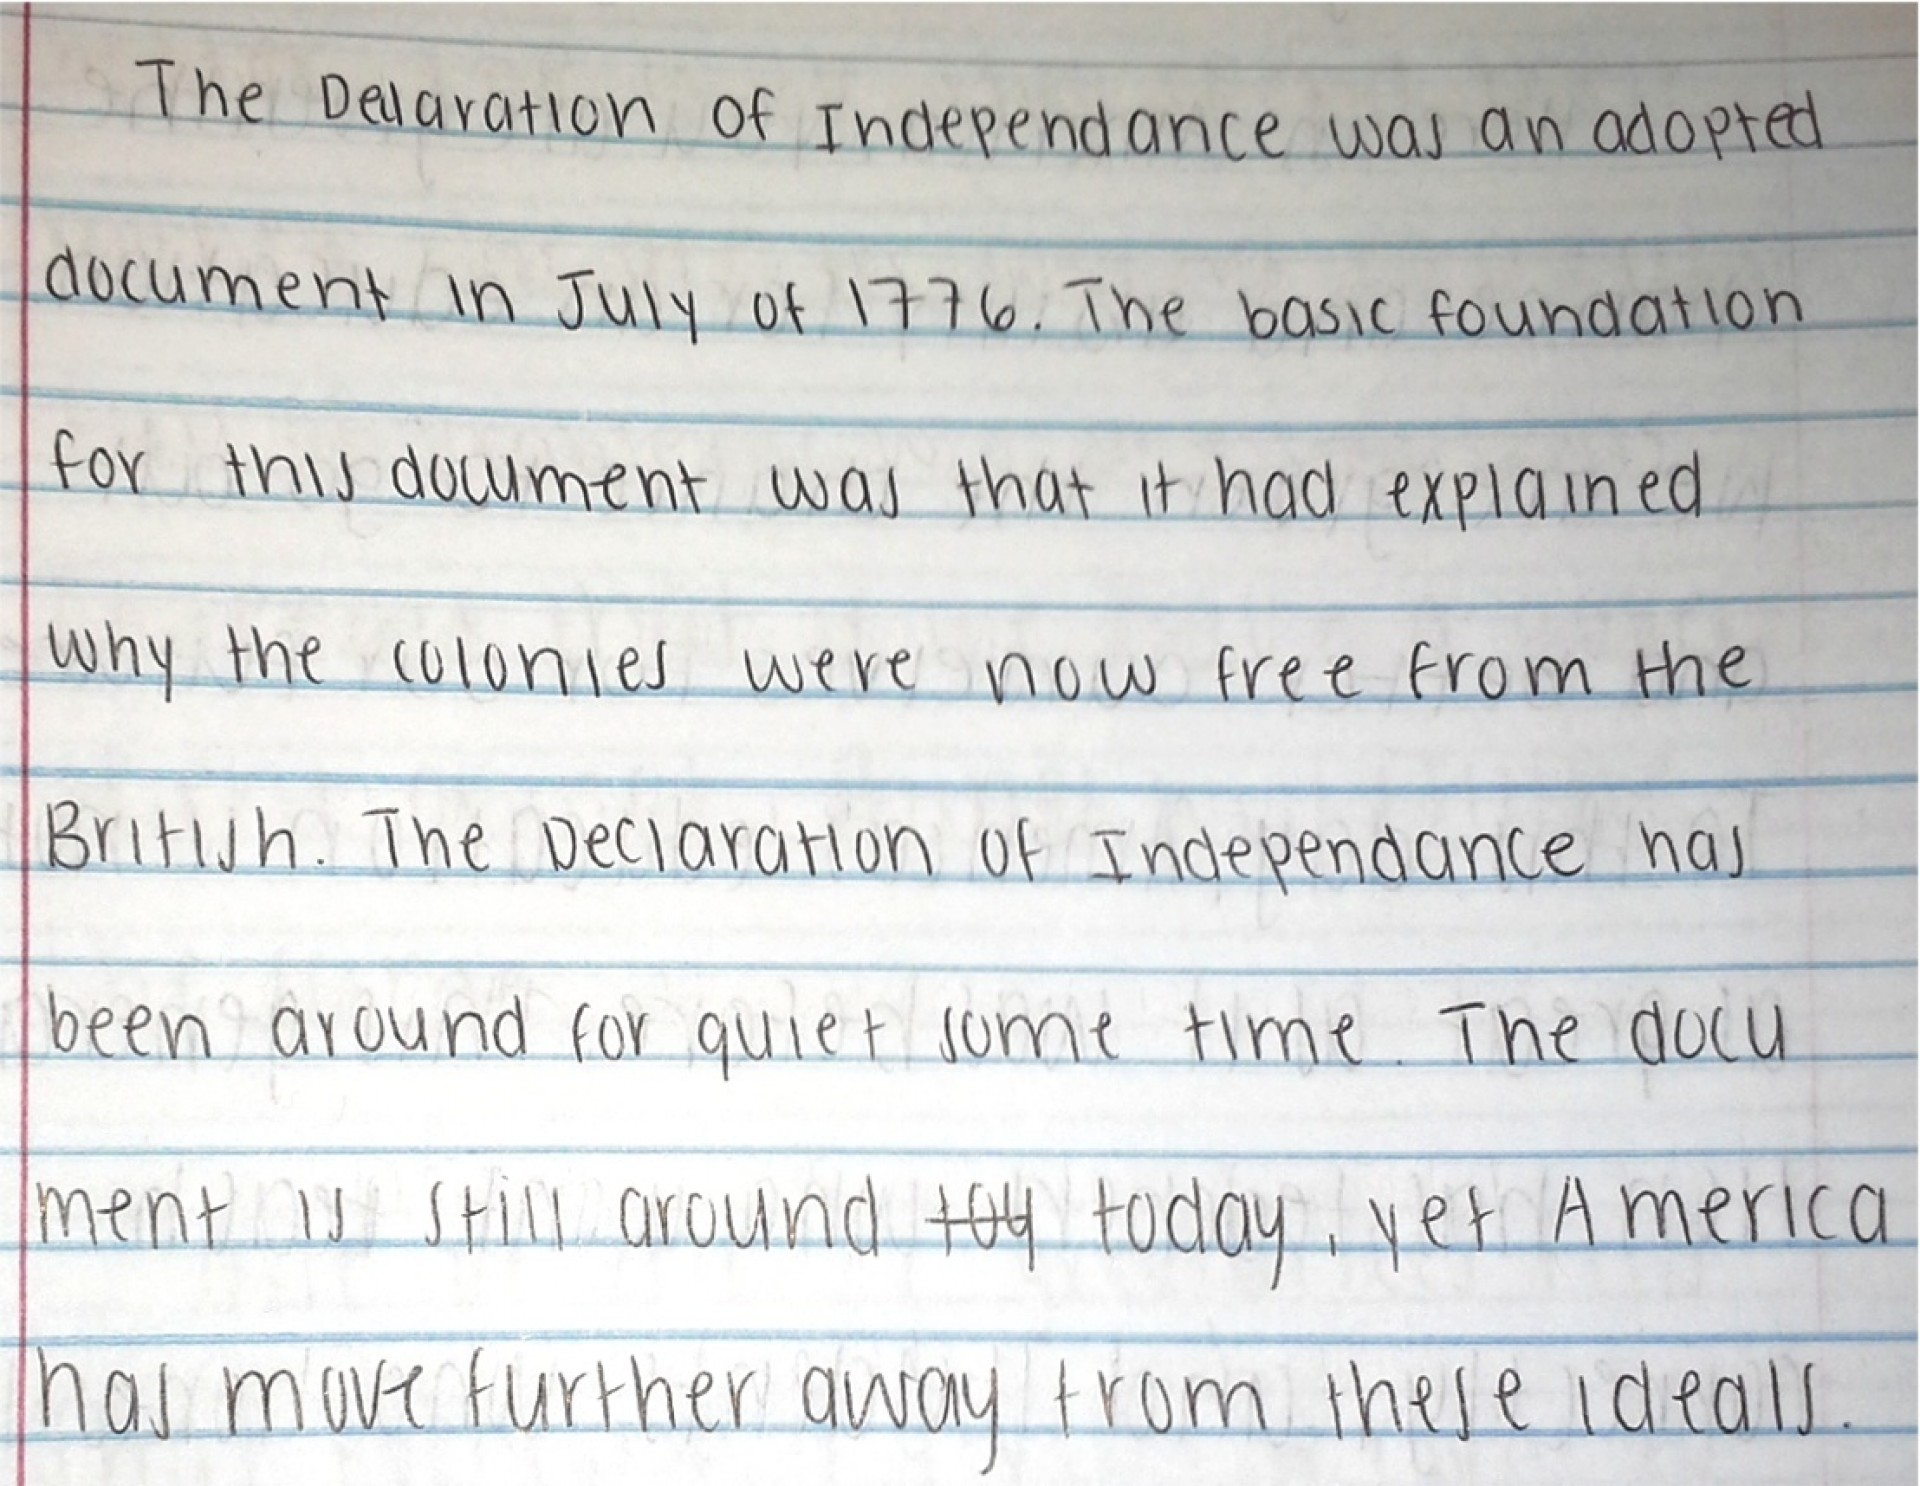 003 Declaration Of Independence Essay Background Knowledge Archaicawful Hook Pdf Mini Q Questions 1920